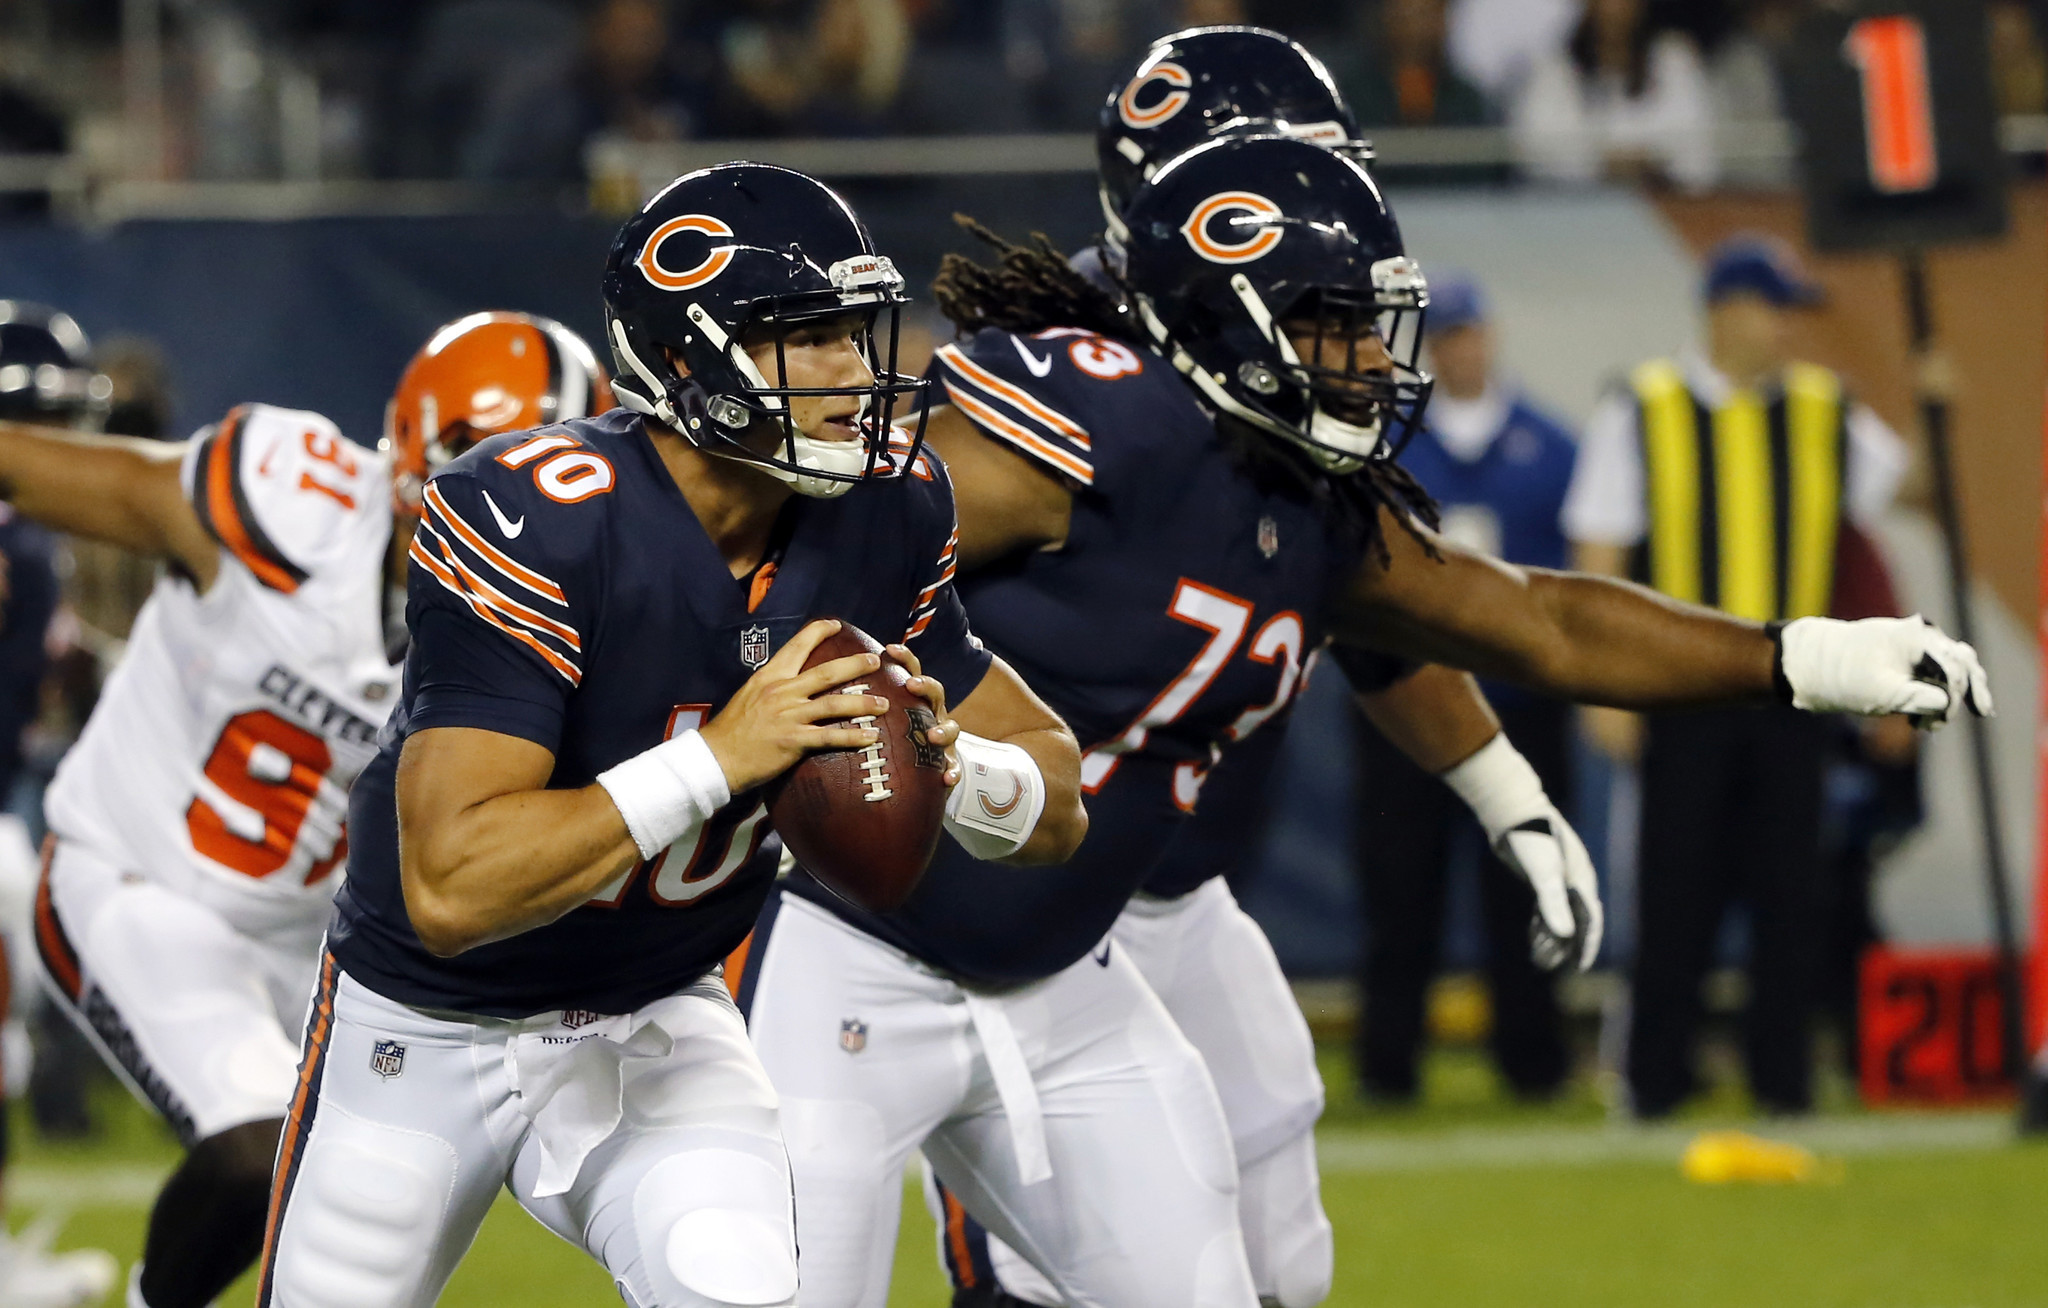 Ct-mitch-trubisky-bears-offense-biggs-spt-1003-20171002